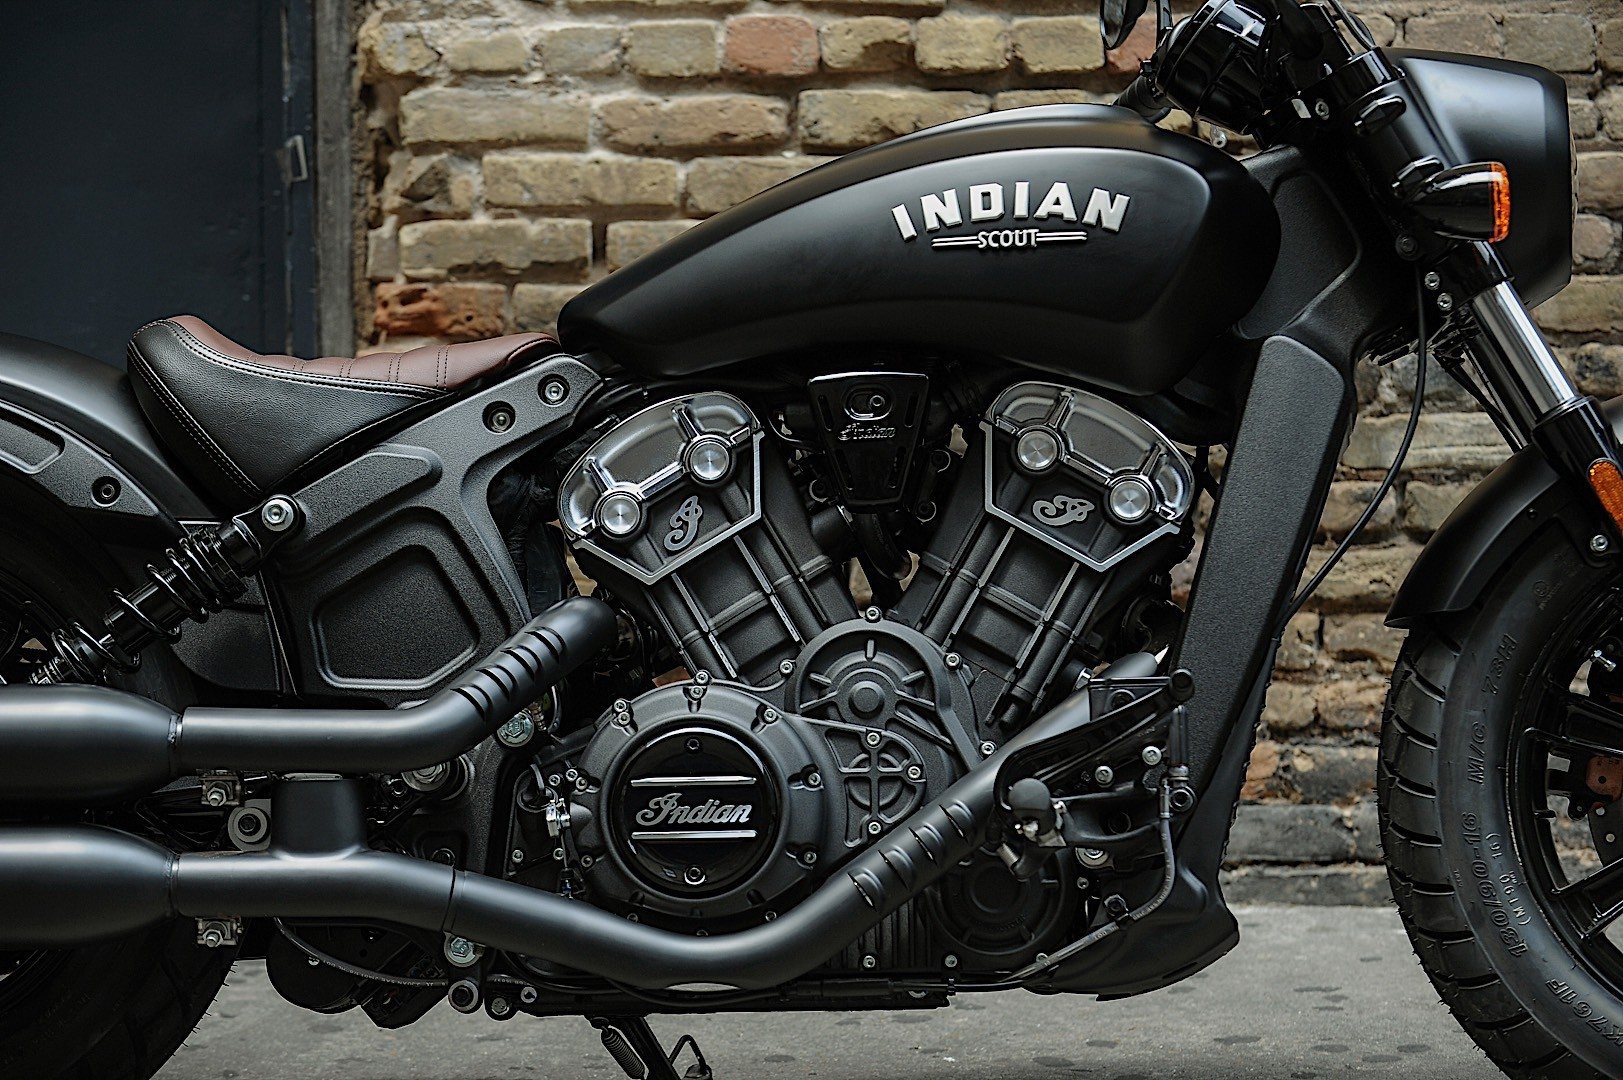 indian motorcycle updates all models for 2018 adds two cruisers and a bobber autoevolution. Black Bedroom Furniture Sets. Home Design Ideas